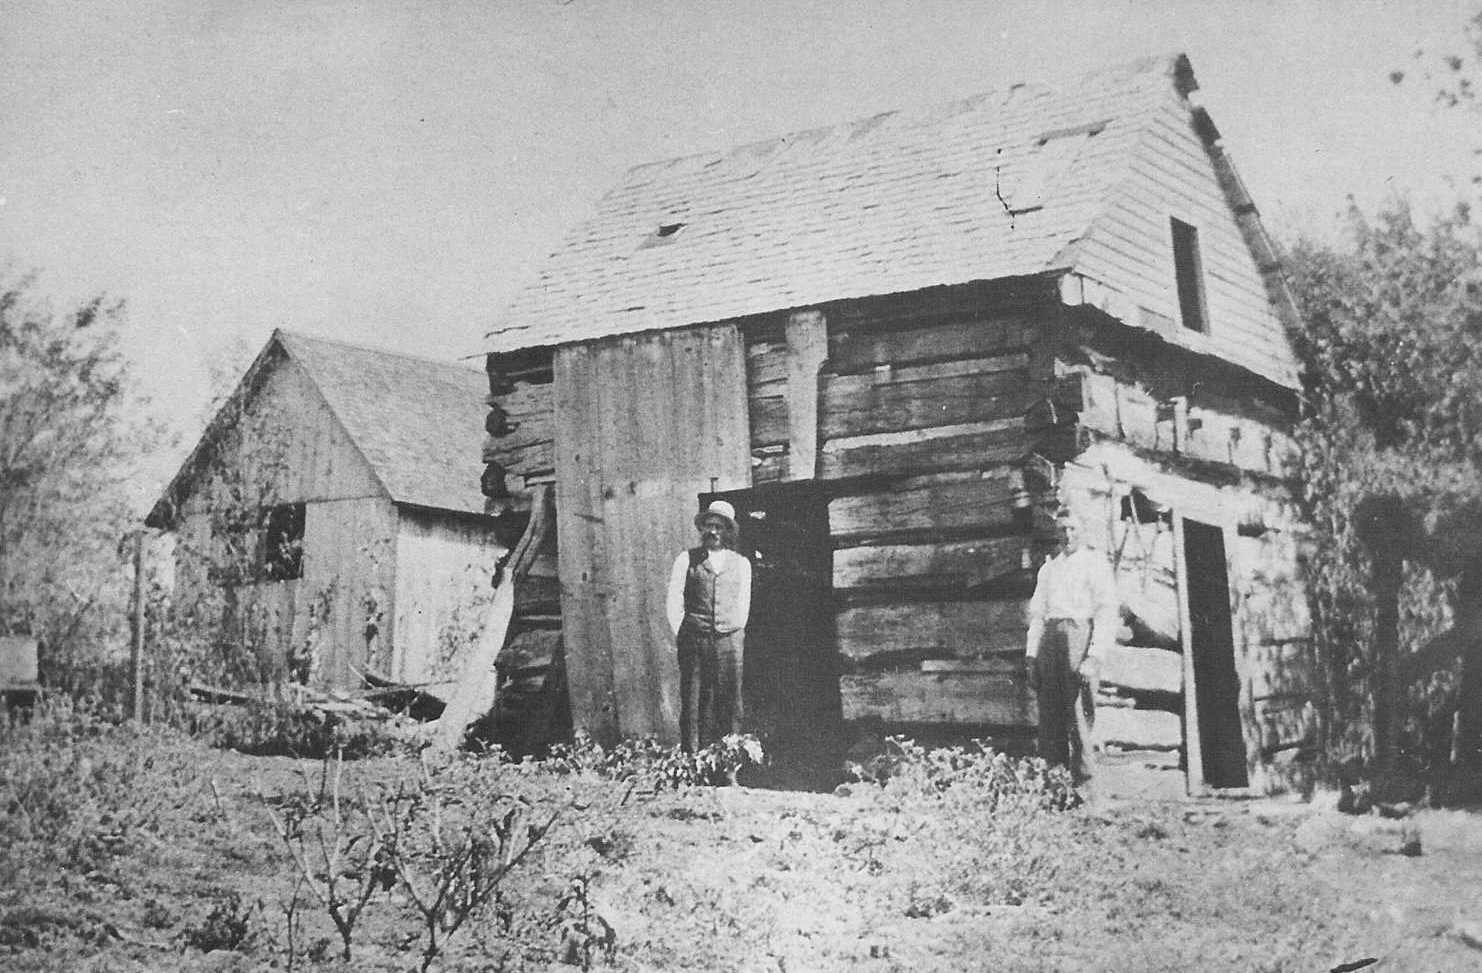 1862 – Earl Rogler and Nichol-Gosler in front of what may be John Rogler cabin and homestead.